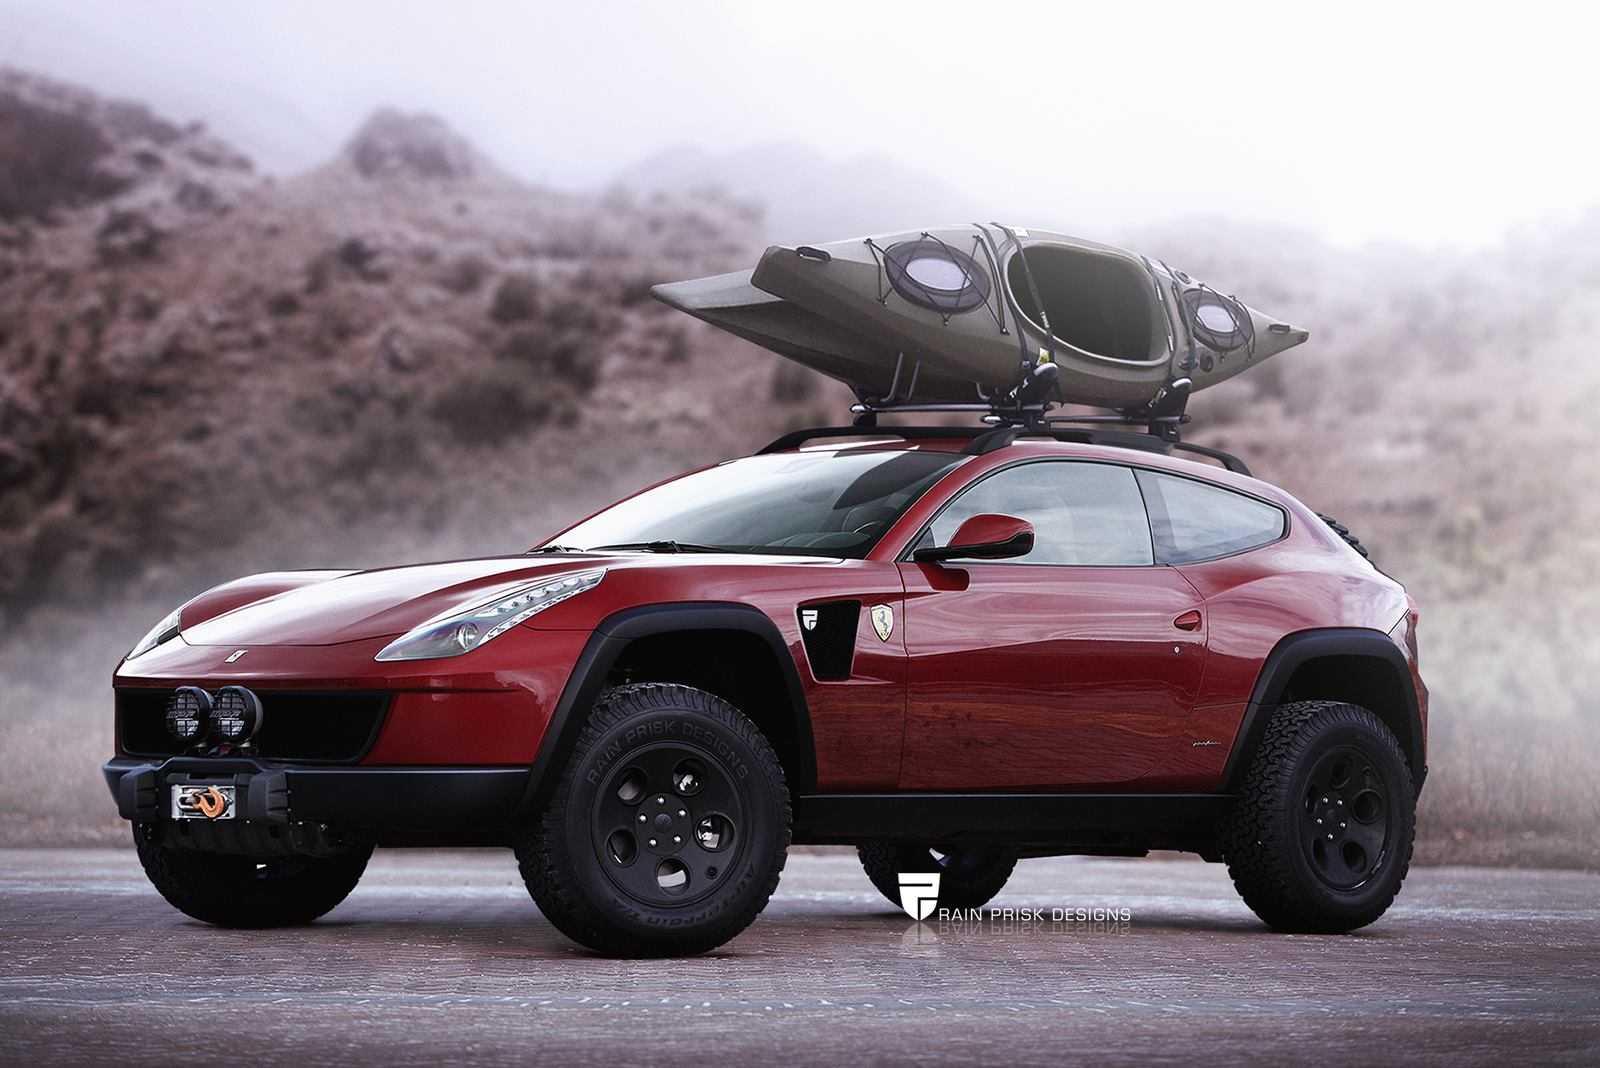 Ferrari FF with Offroad Equipment Would Make for the Coolest Crossover Ever